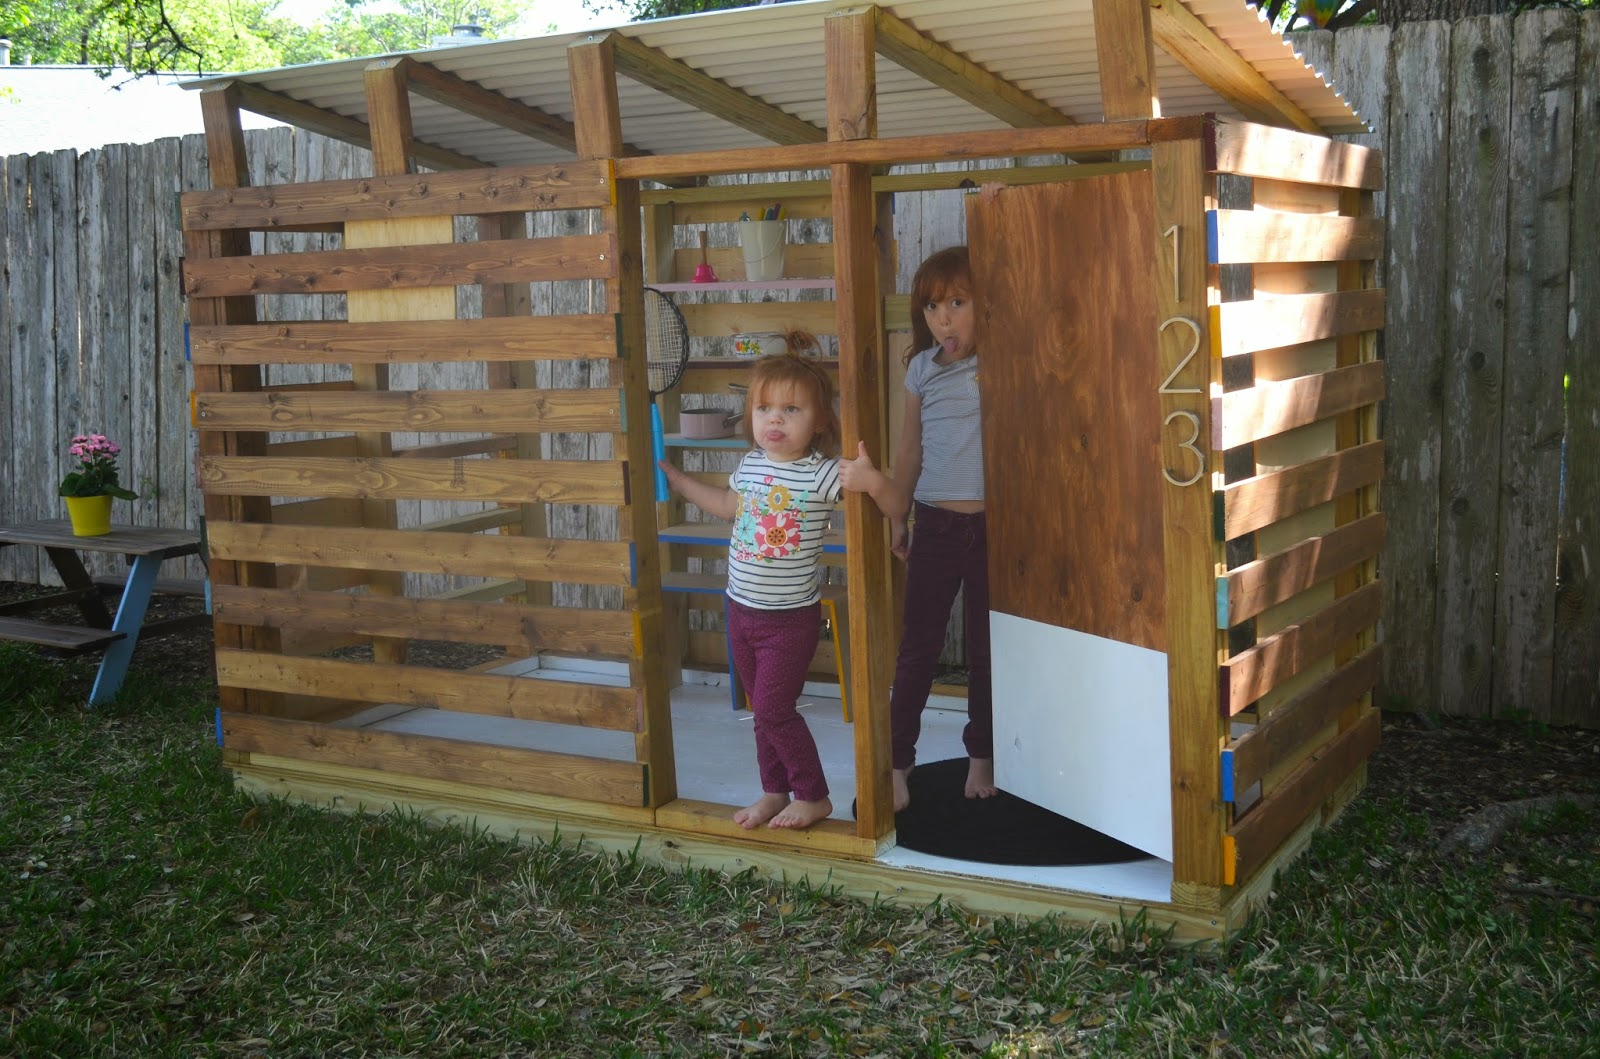 Modern Diy Outdoor Playhouse Tour And How To in 11 Awesome Ideas How to Craft Backyard Playhouse Ideas